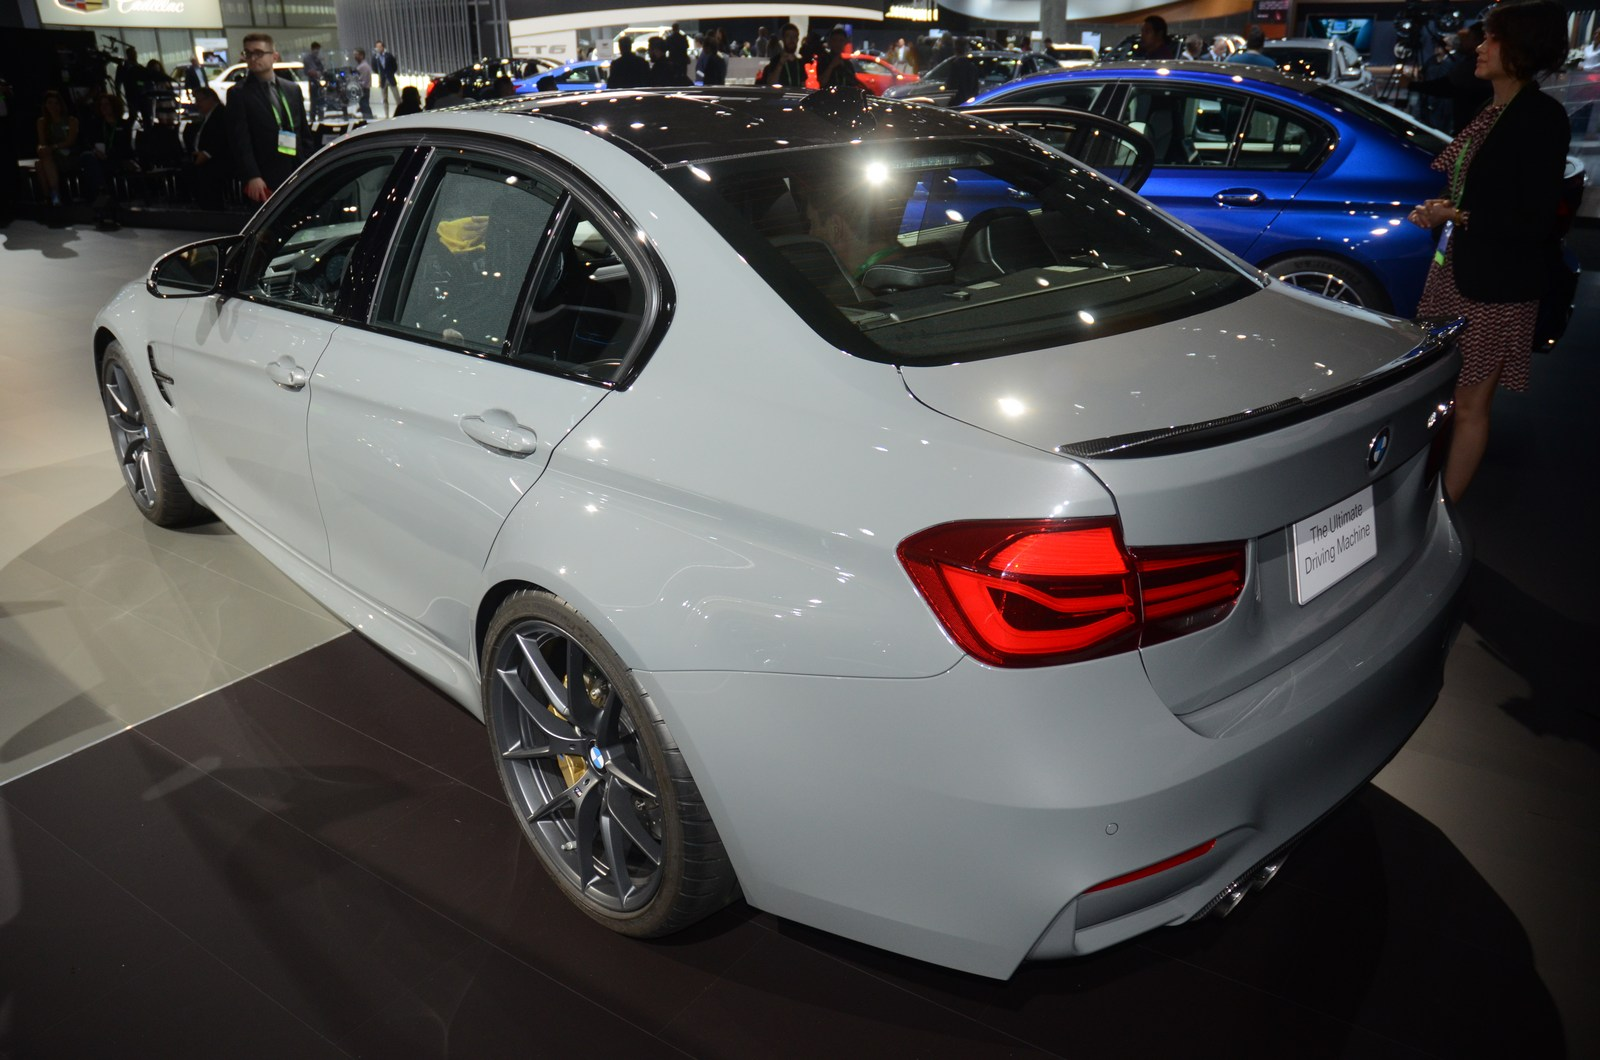 bmw m3 cs drops 110 pounds and packs 453 hp. Black Bedroom Furniture Sets. Home Design Ideas